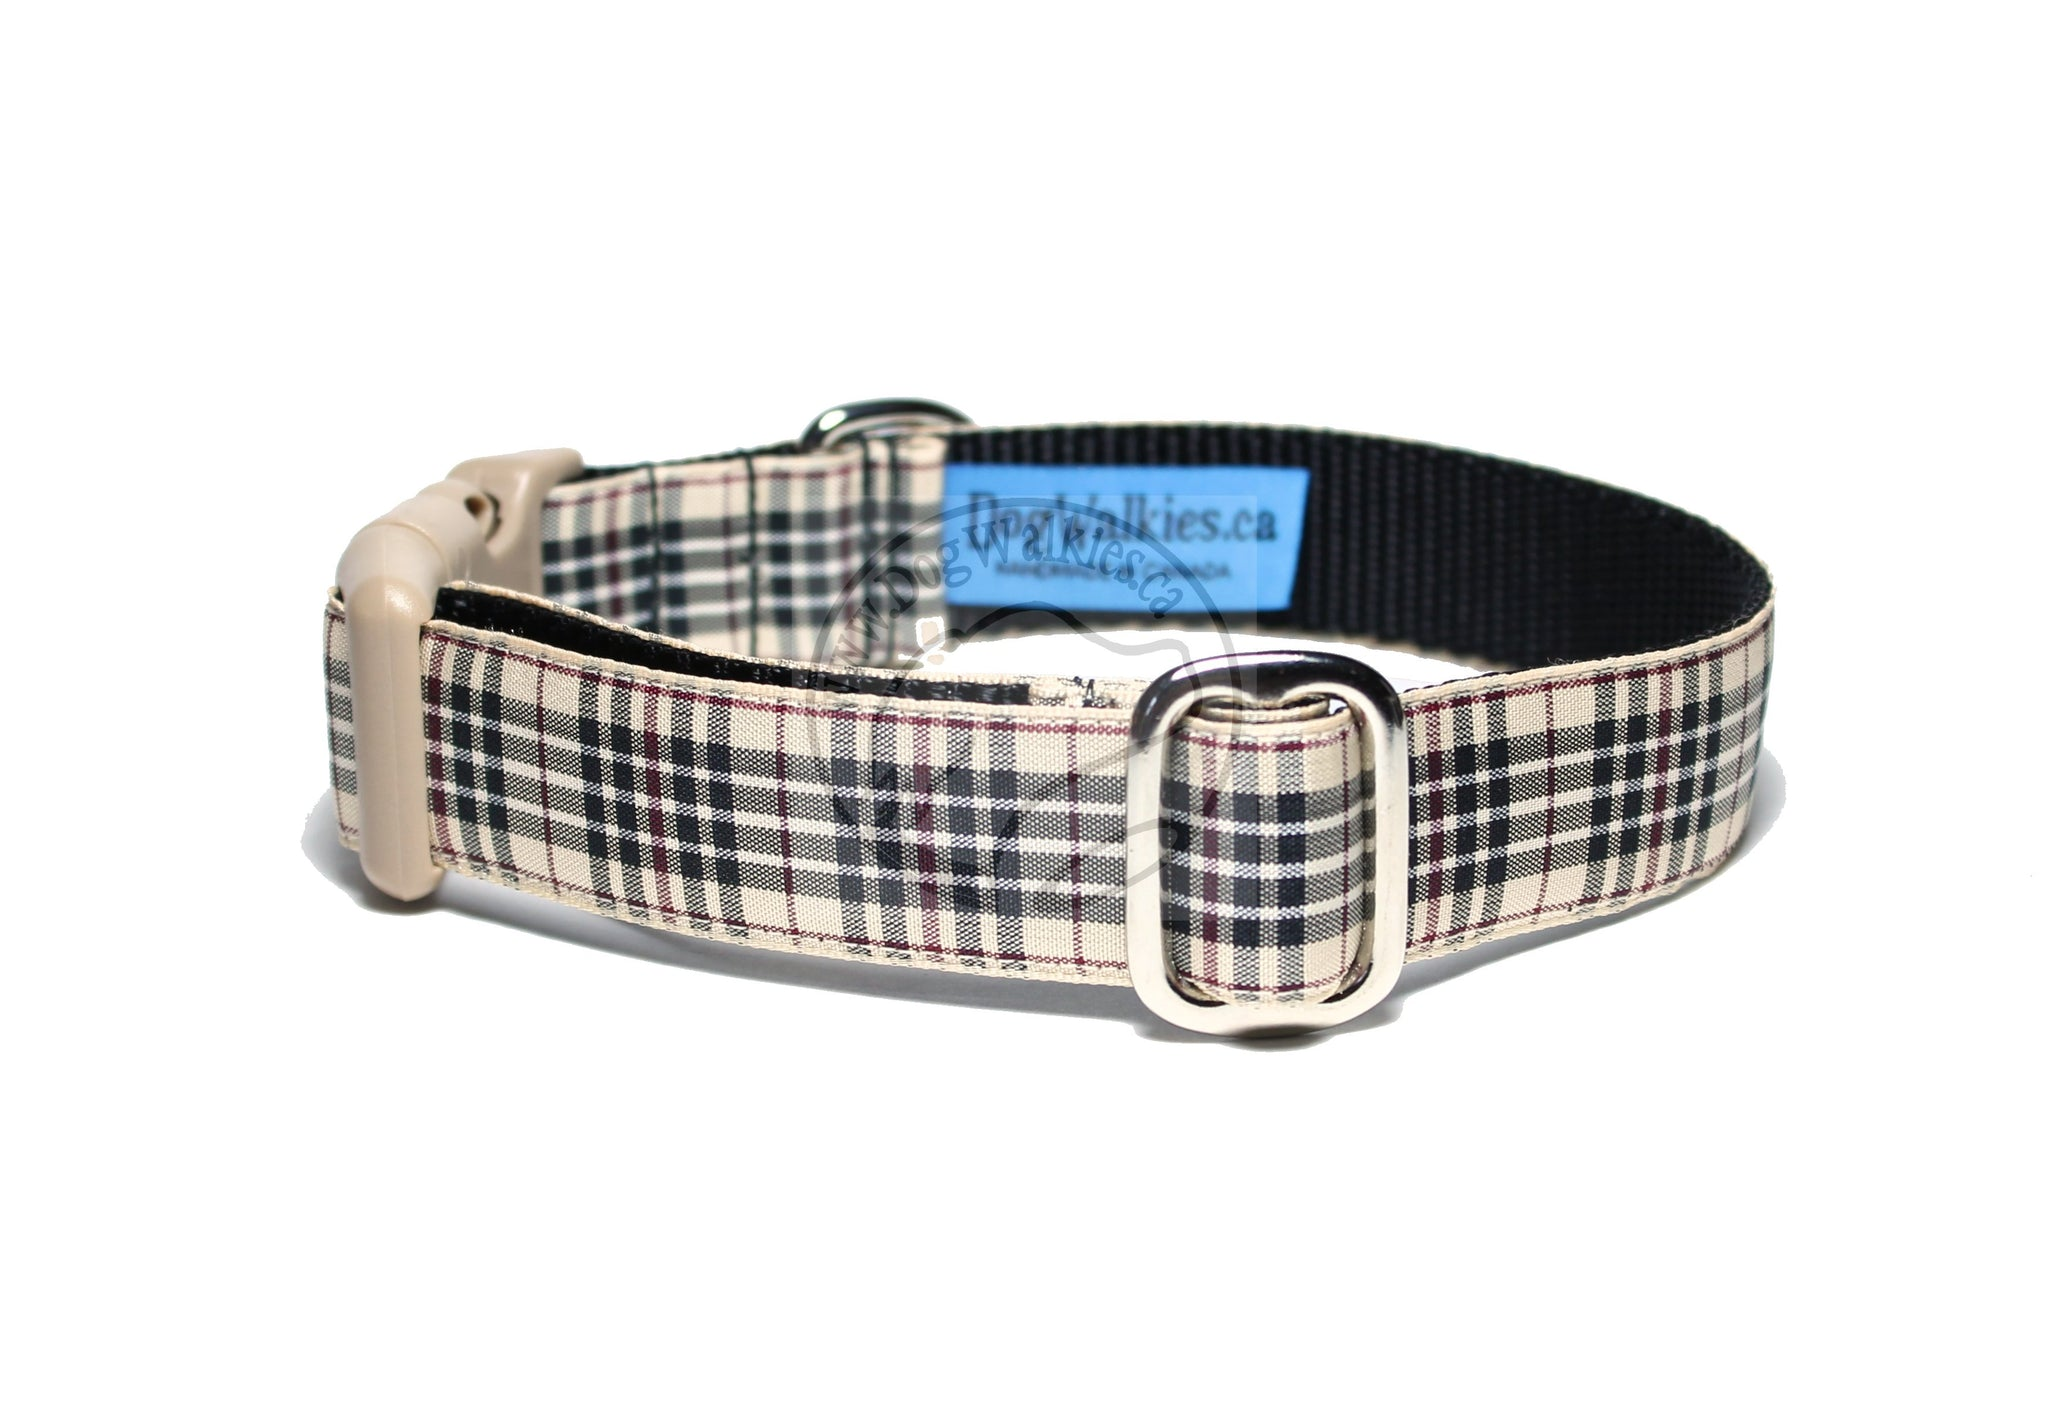 Blackberry tartan - dog collar